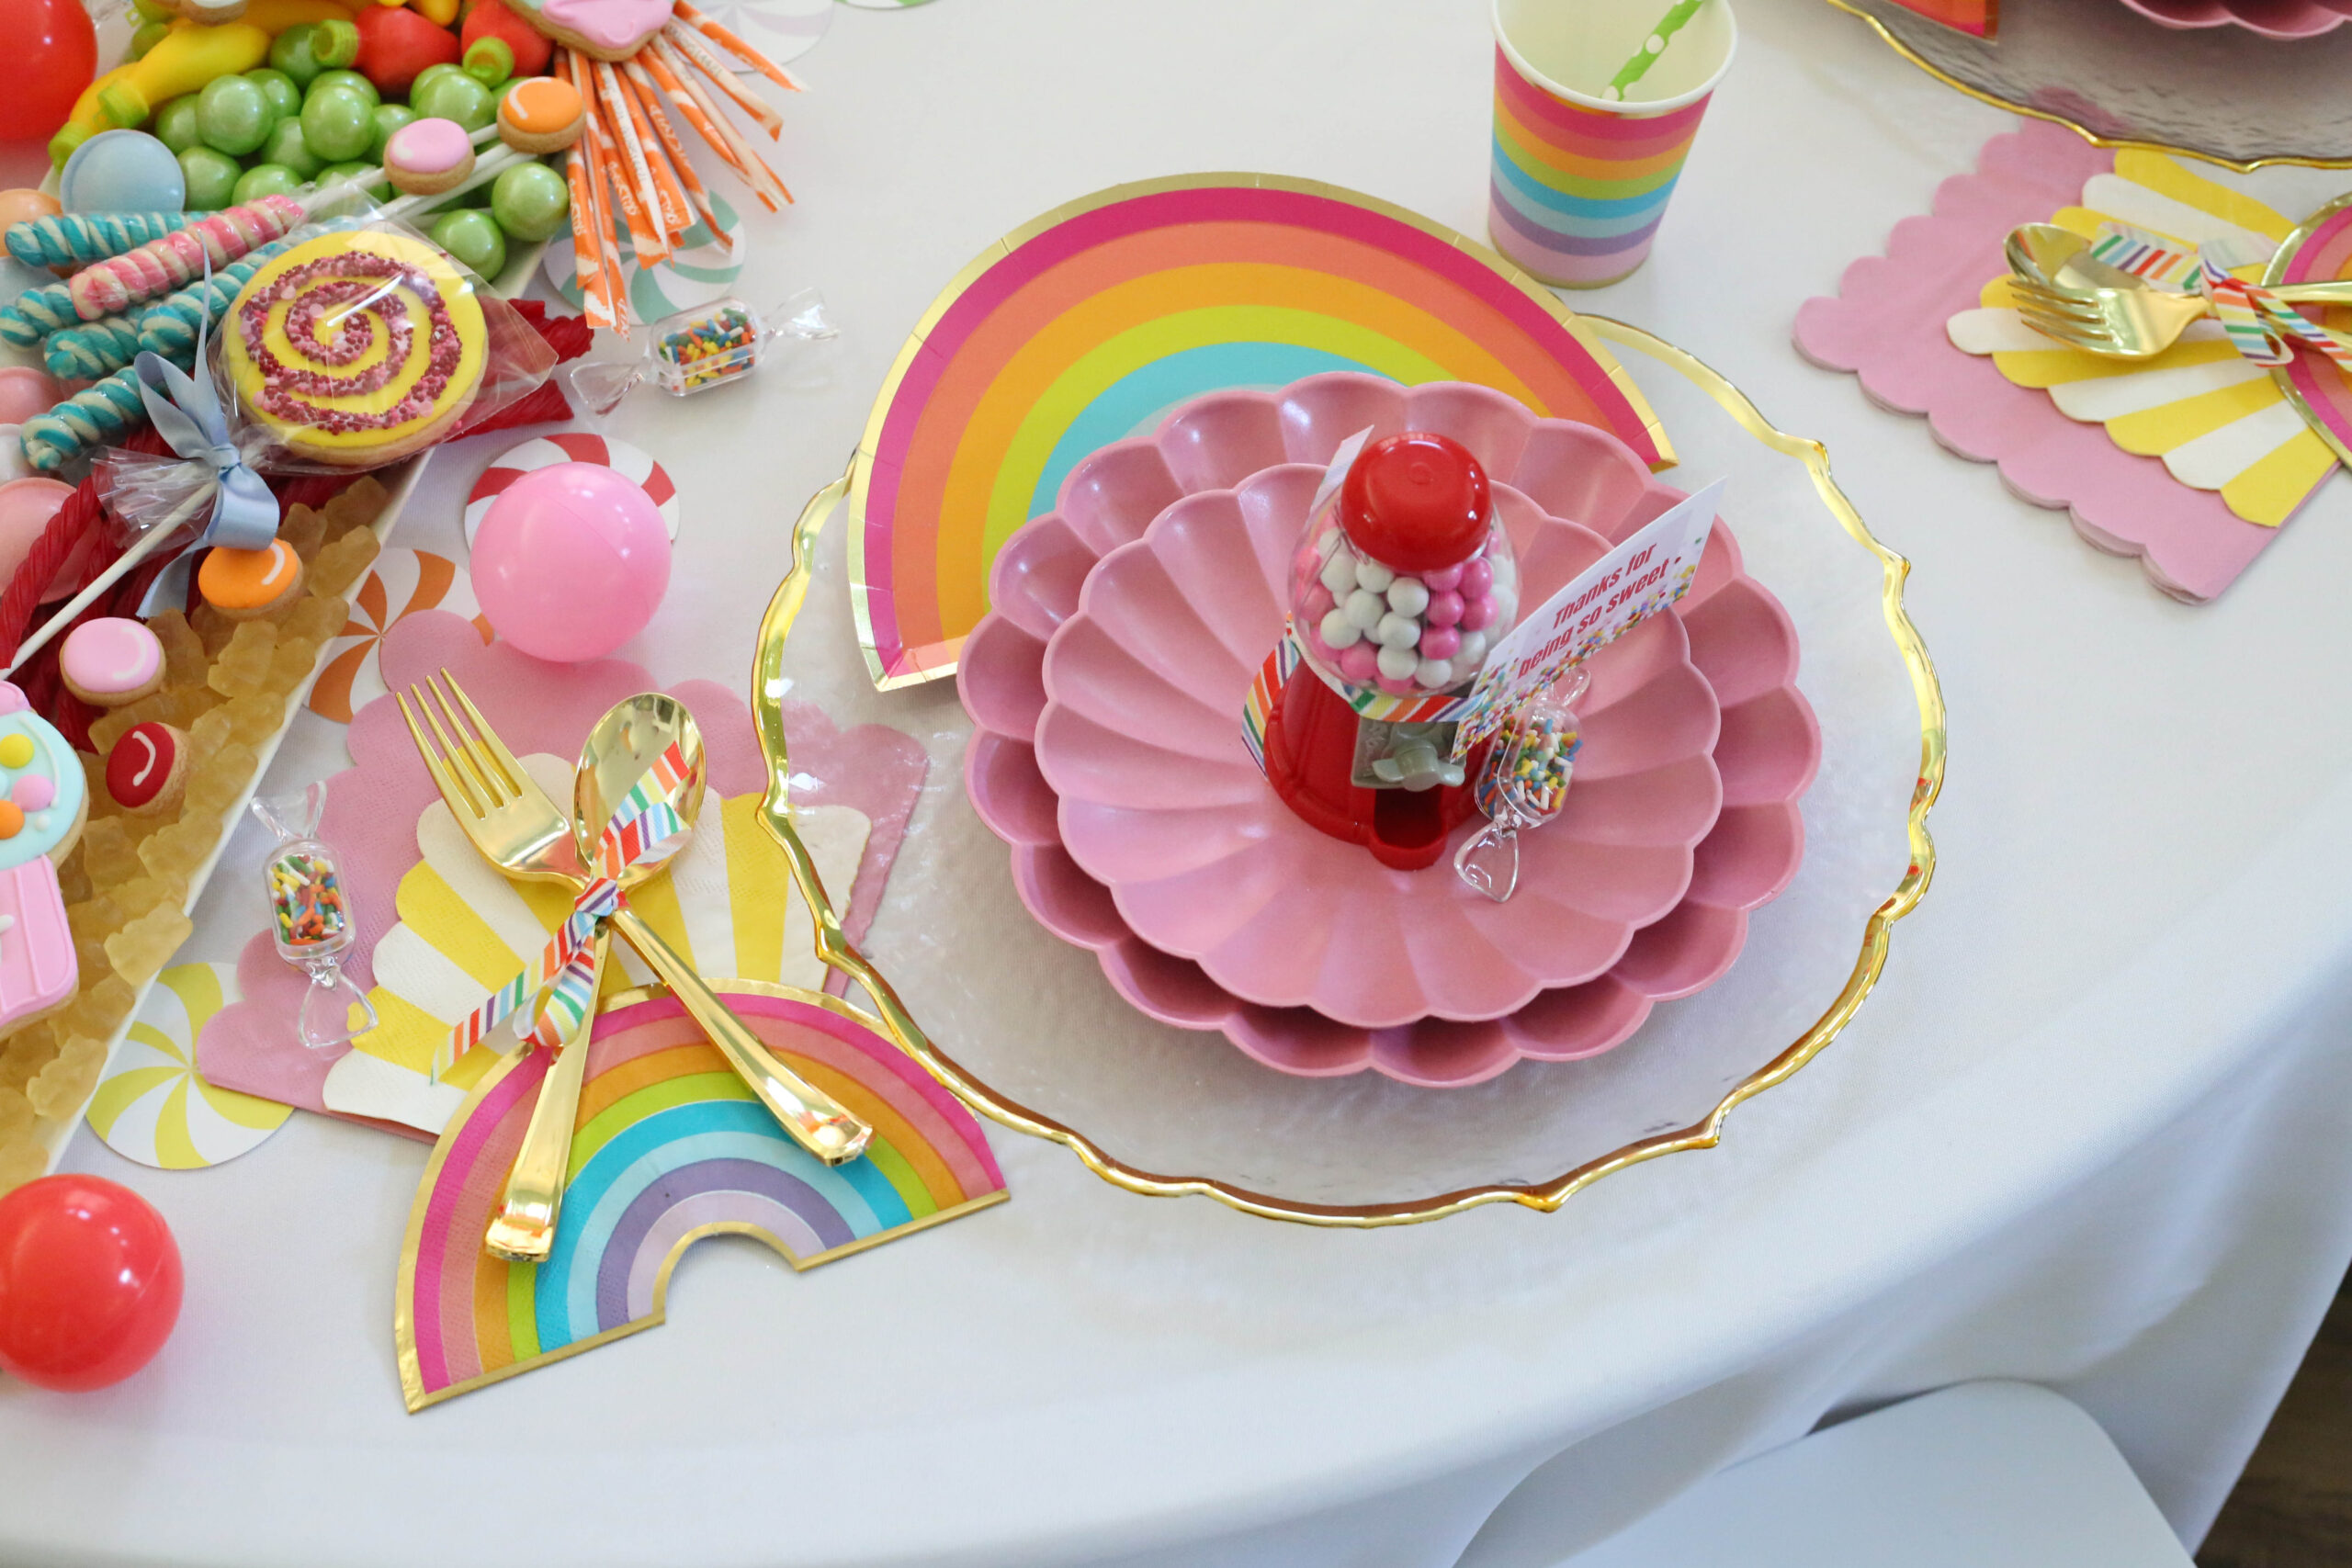 candy party place setting at a round table with a white table cloth